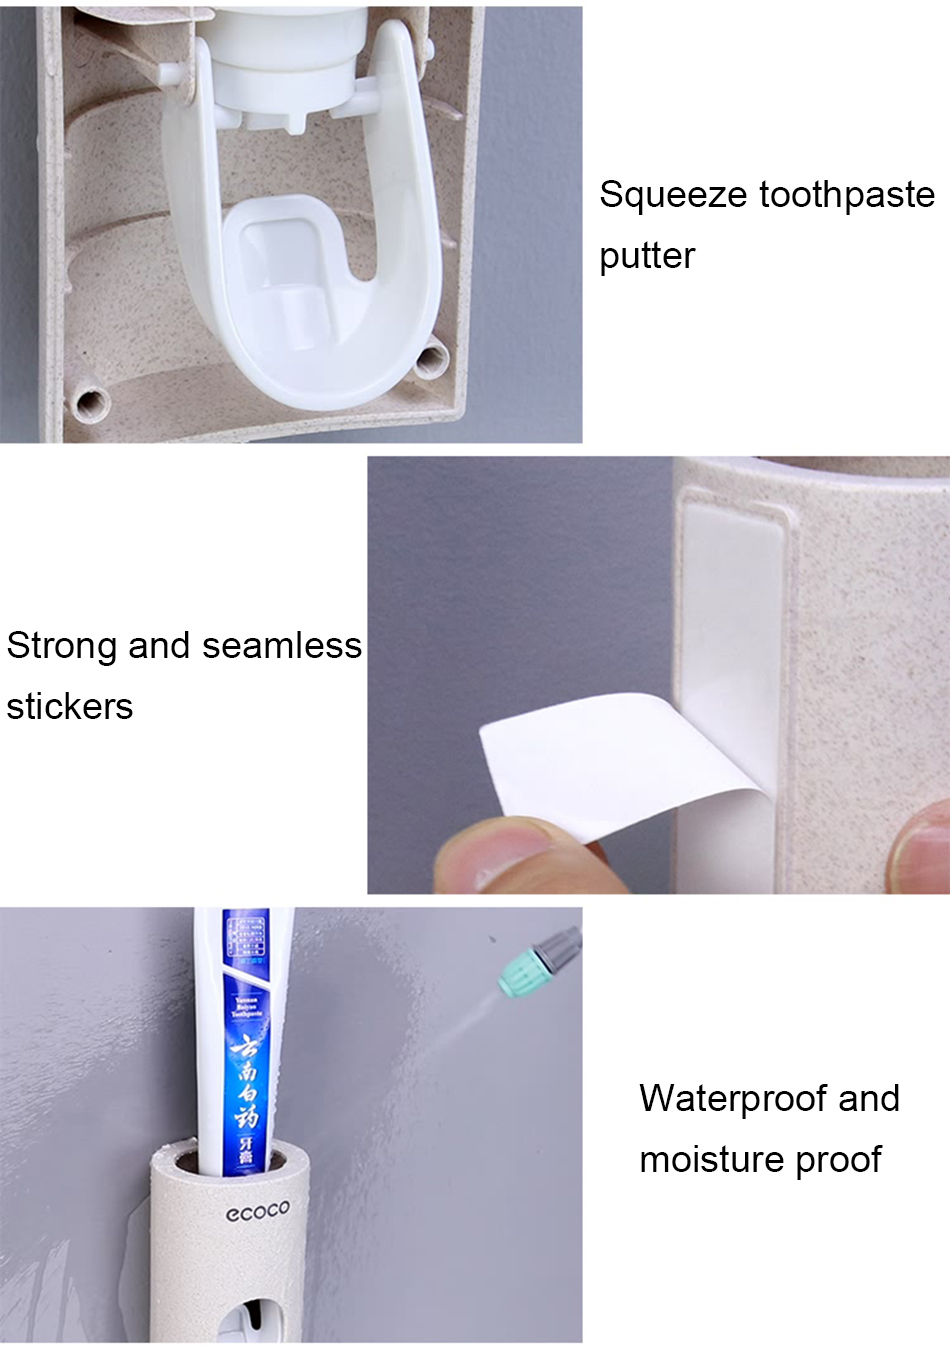 HTB1cbb9eL1H3KVjSZFHq6zKppXaa - BAISPO Automatic Toothpaste Dispenser Toothbrush Holder Wall Mount Stand Bathroom Accessories